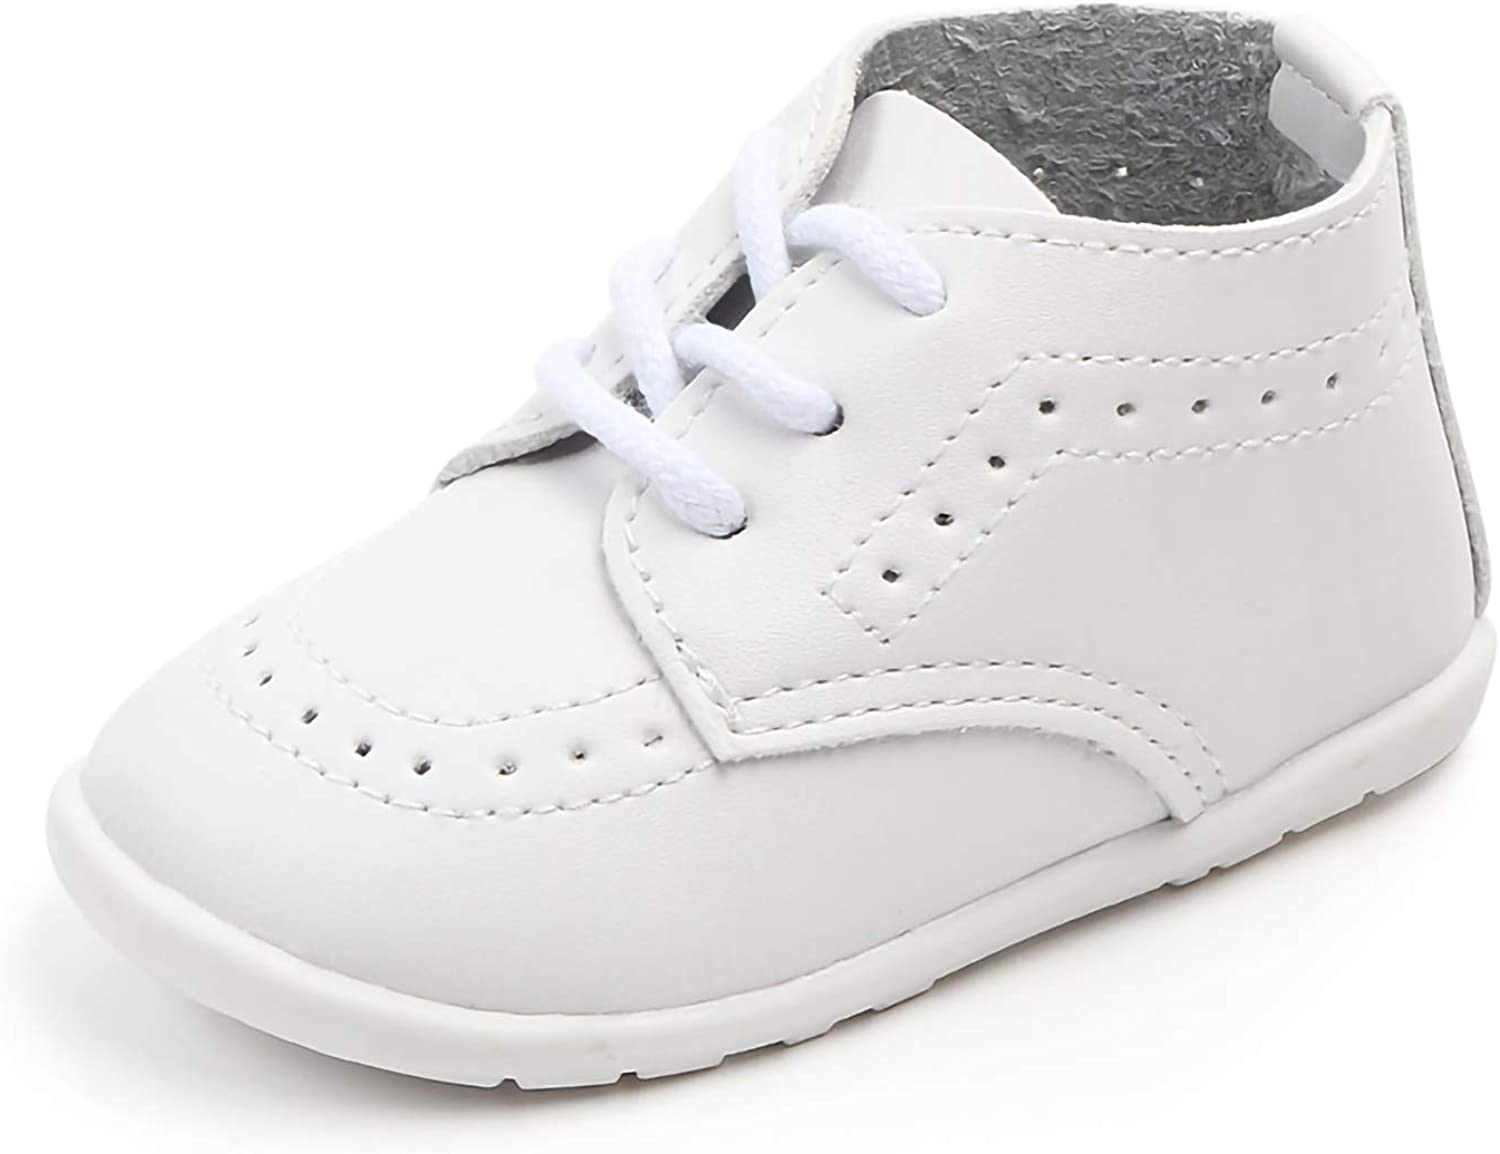 Quernn Boys Girls Lace Up Shoes, Comfortable First Walking Oxford Shoes, Baby Boy Dress Shoes,(Classic Black/White)